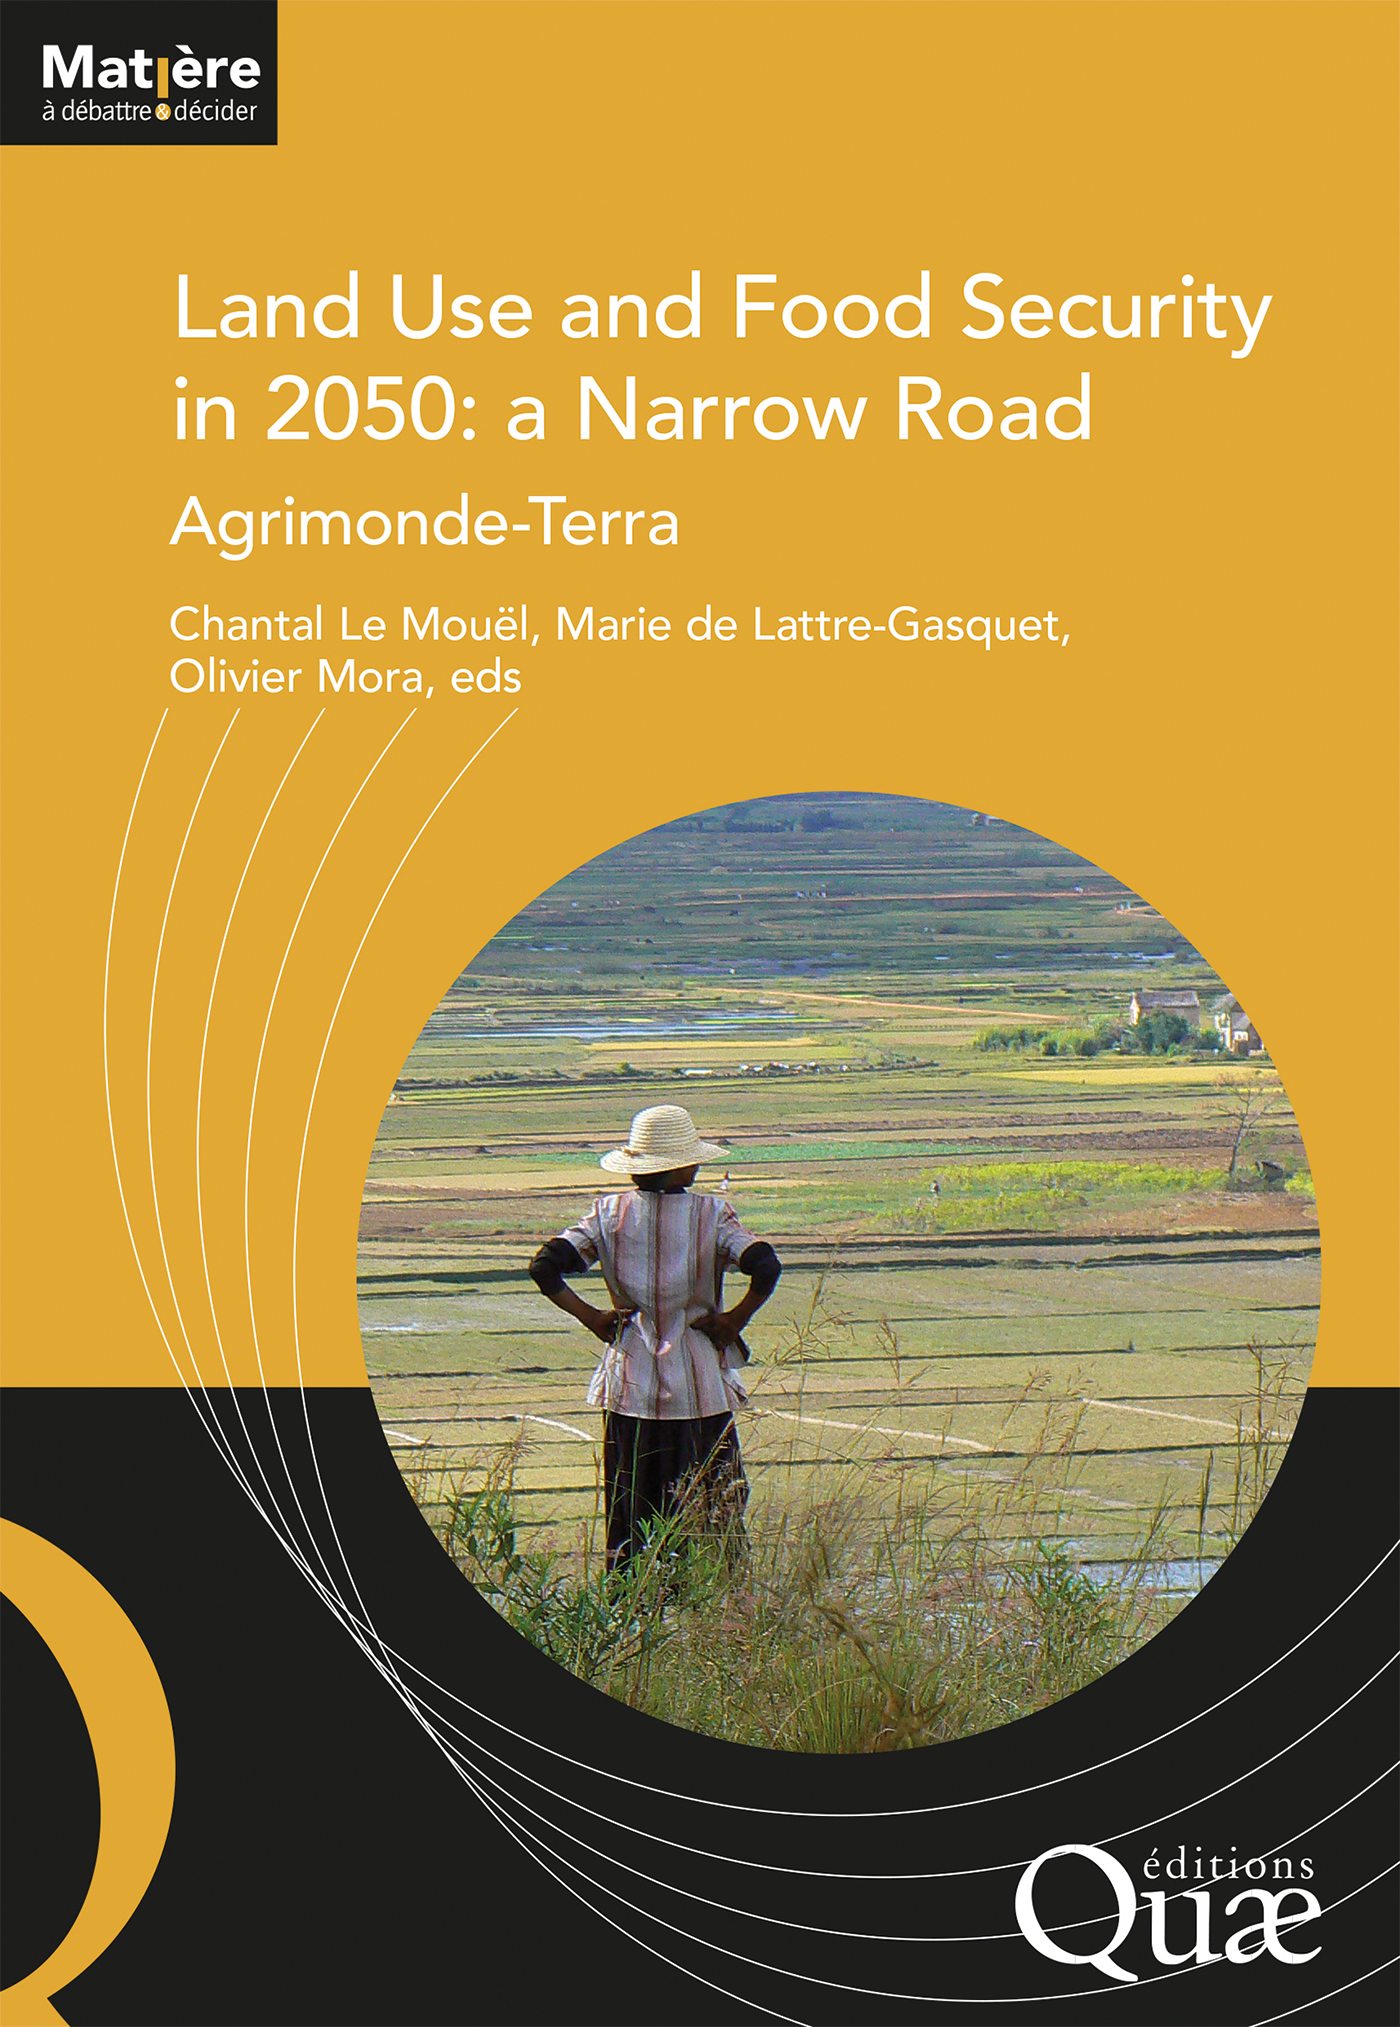 Land Use and Food Security in 2050: a Narrow Road De Chantal Le Mouël, Marie de Lattre-Gasquet et Olivier Mora - Quæ